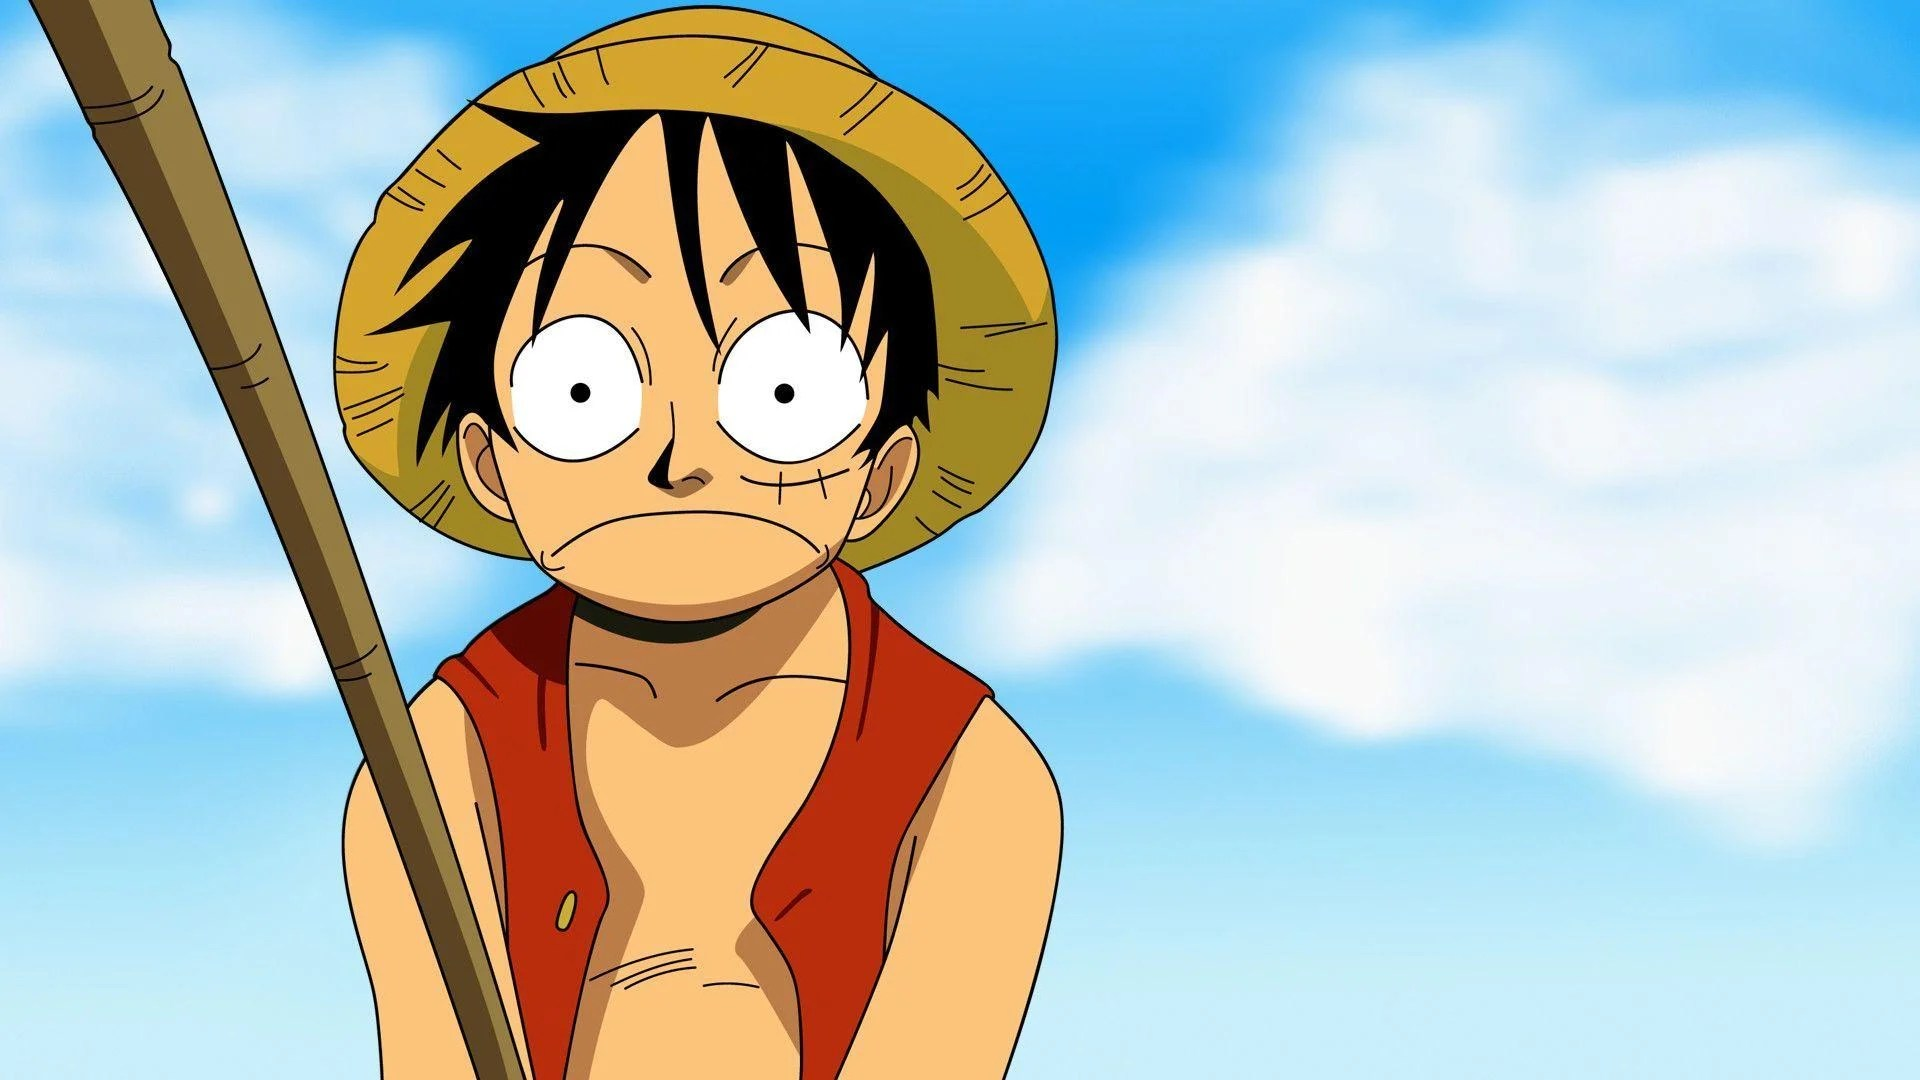 Make it easy with our tips on application. One Piece Wallpapers Luffy - Wallpaper Cave